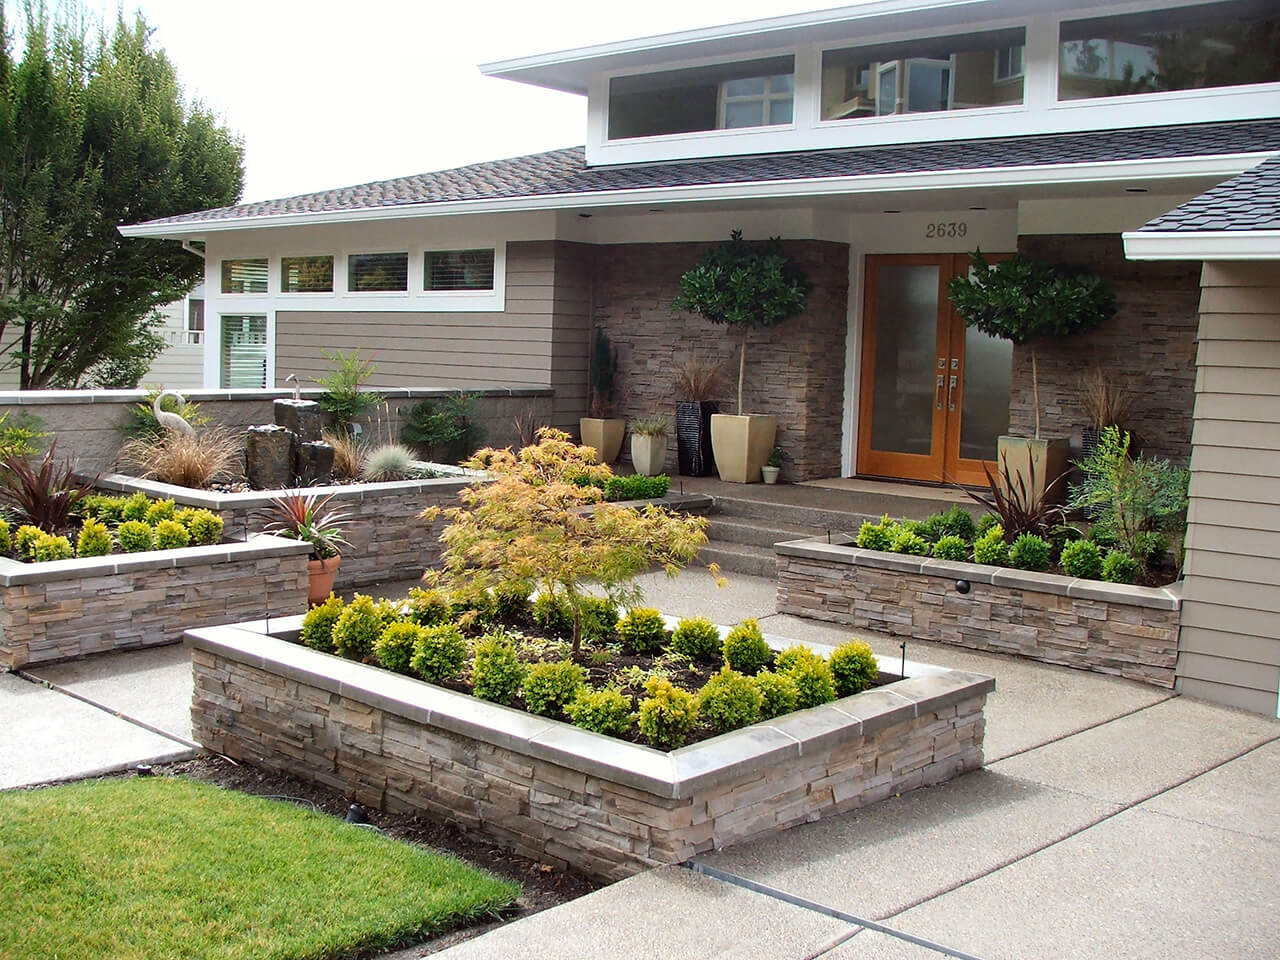 20 Brilliant Front Garden Landscaping Ideas - Style Motivation